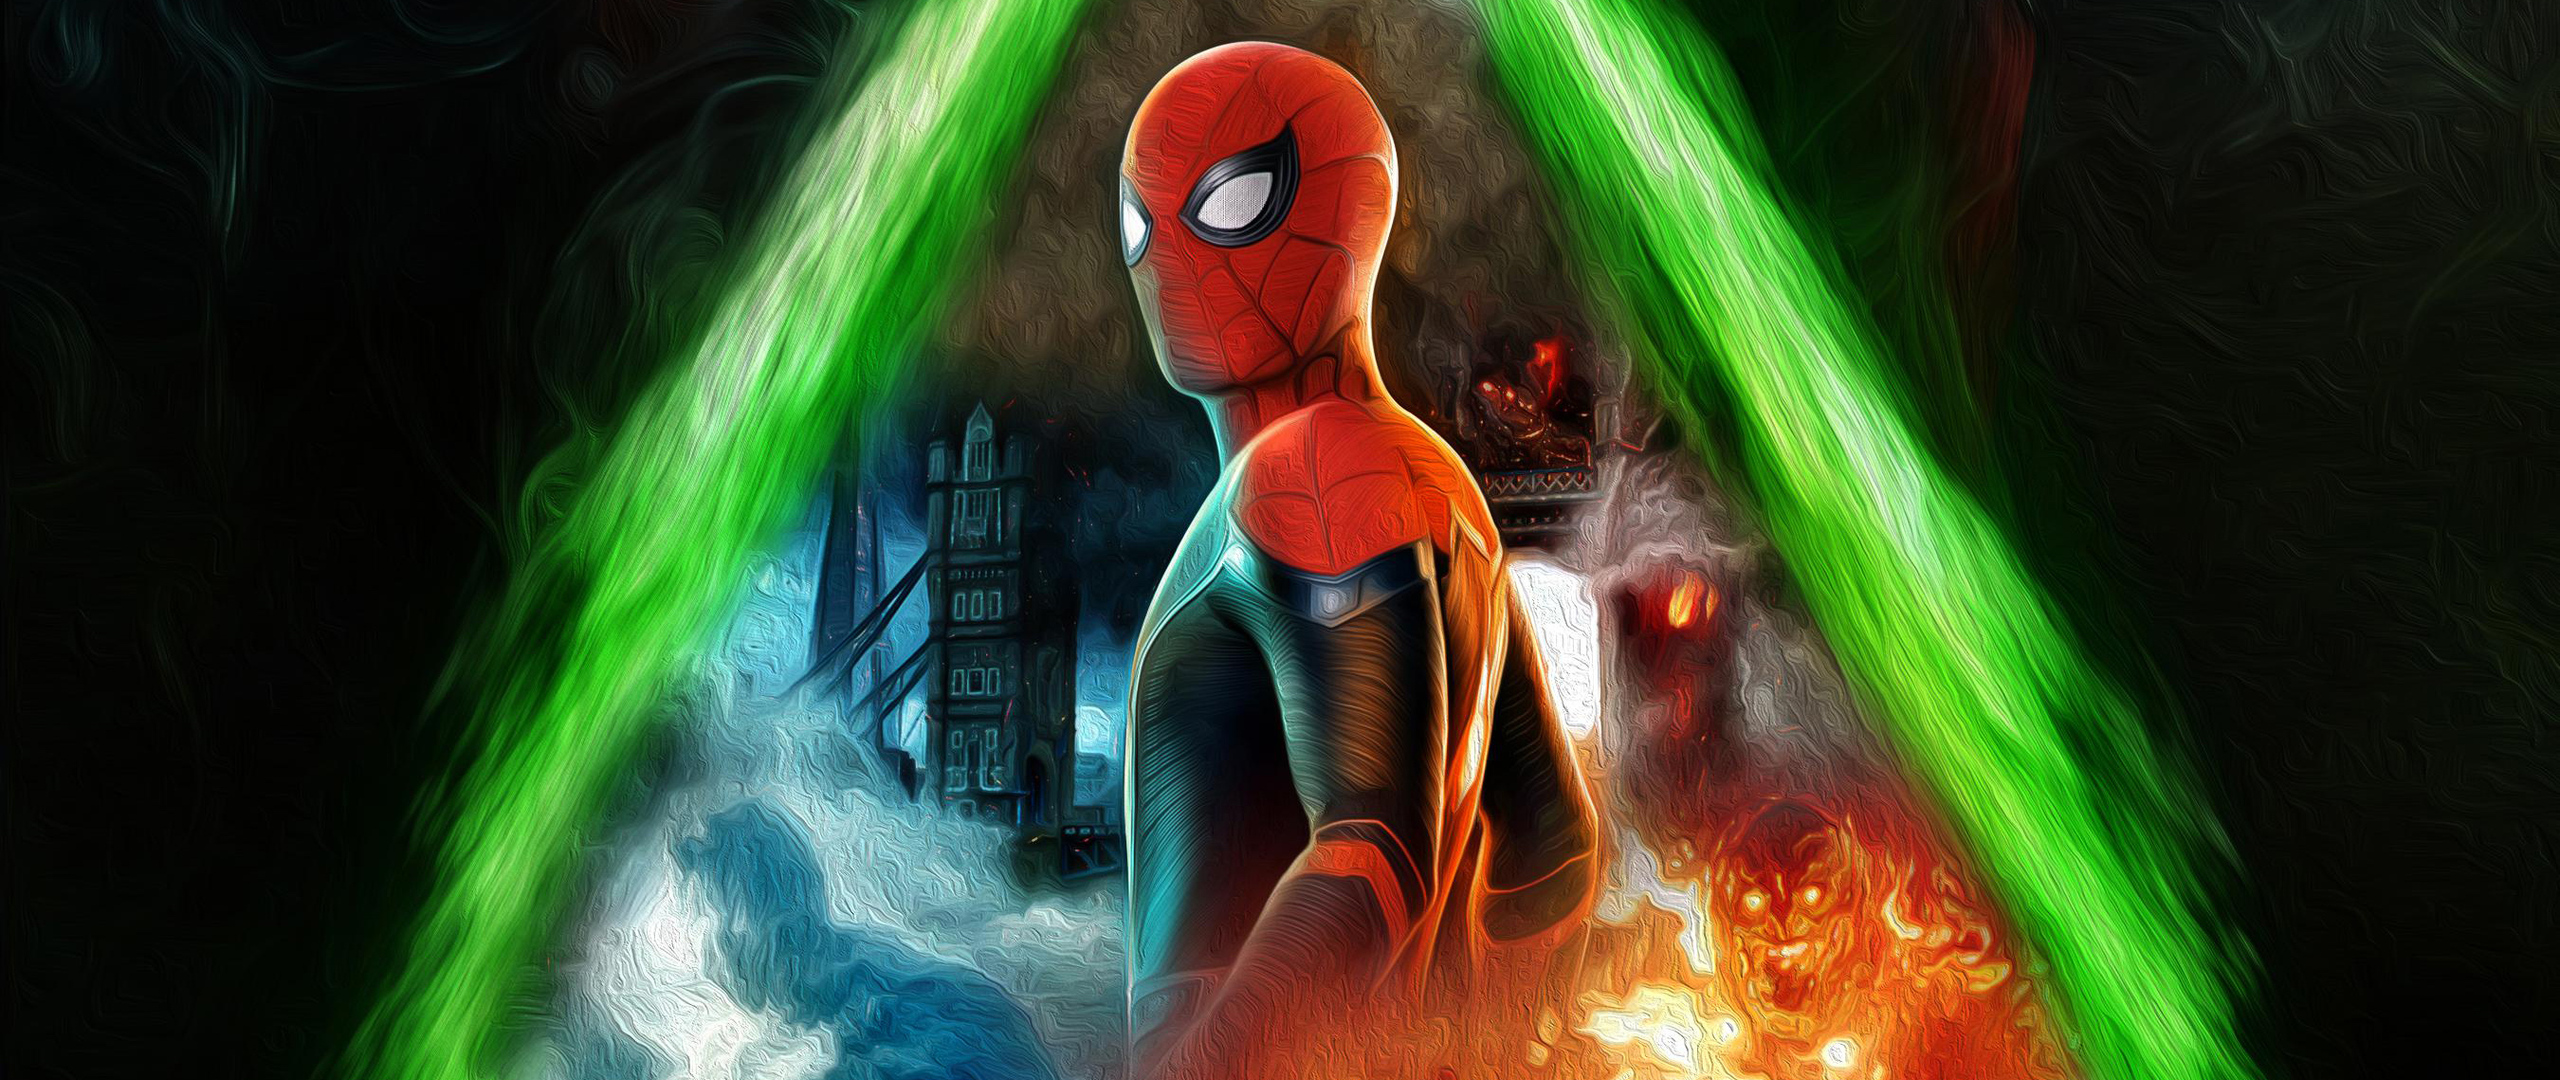 spiderman-far-fromhome-art-wt.jpg